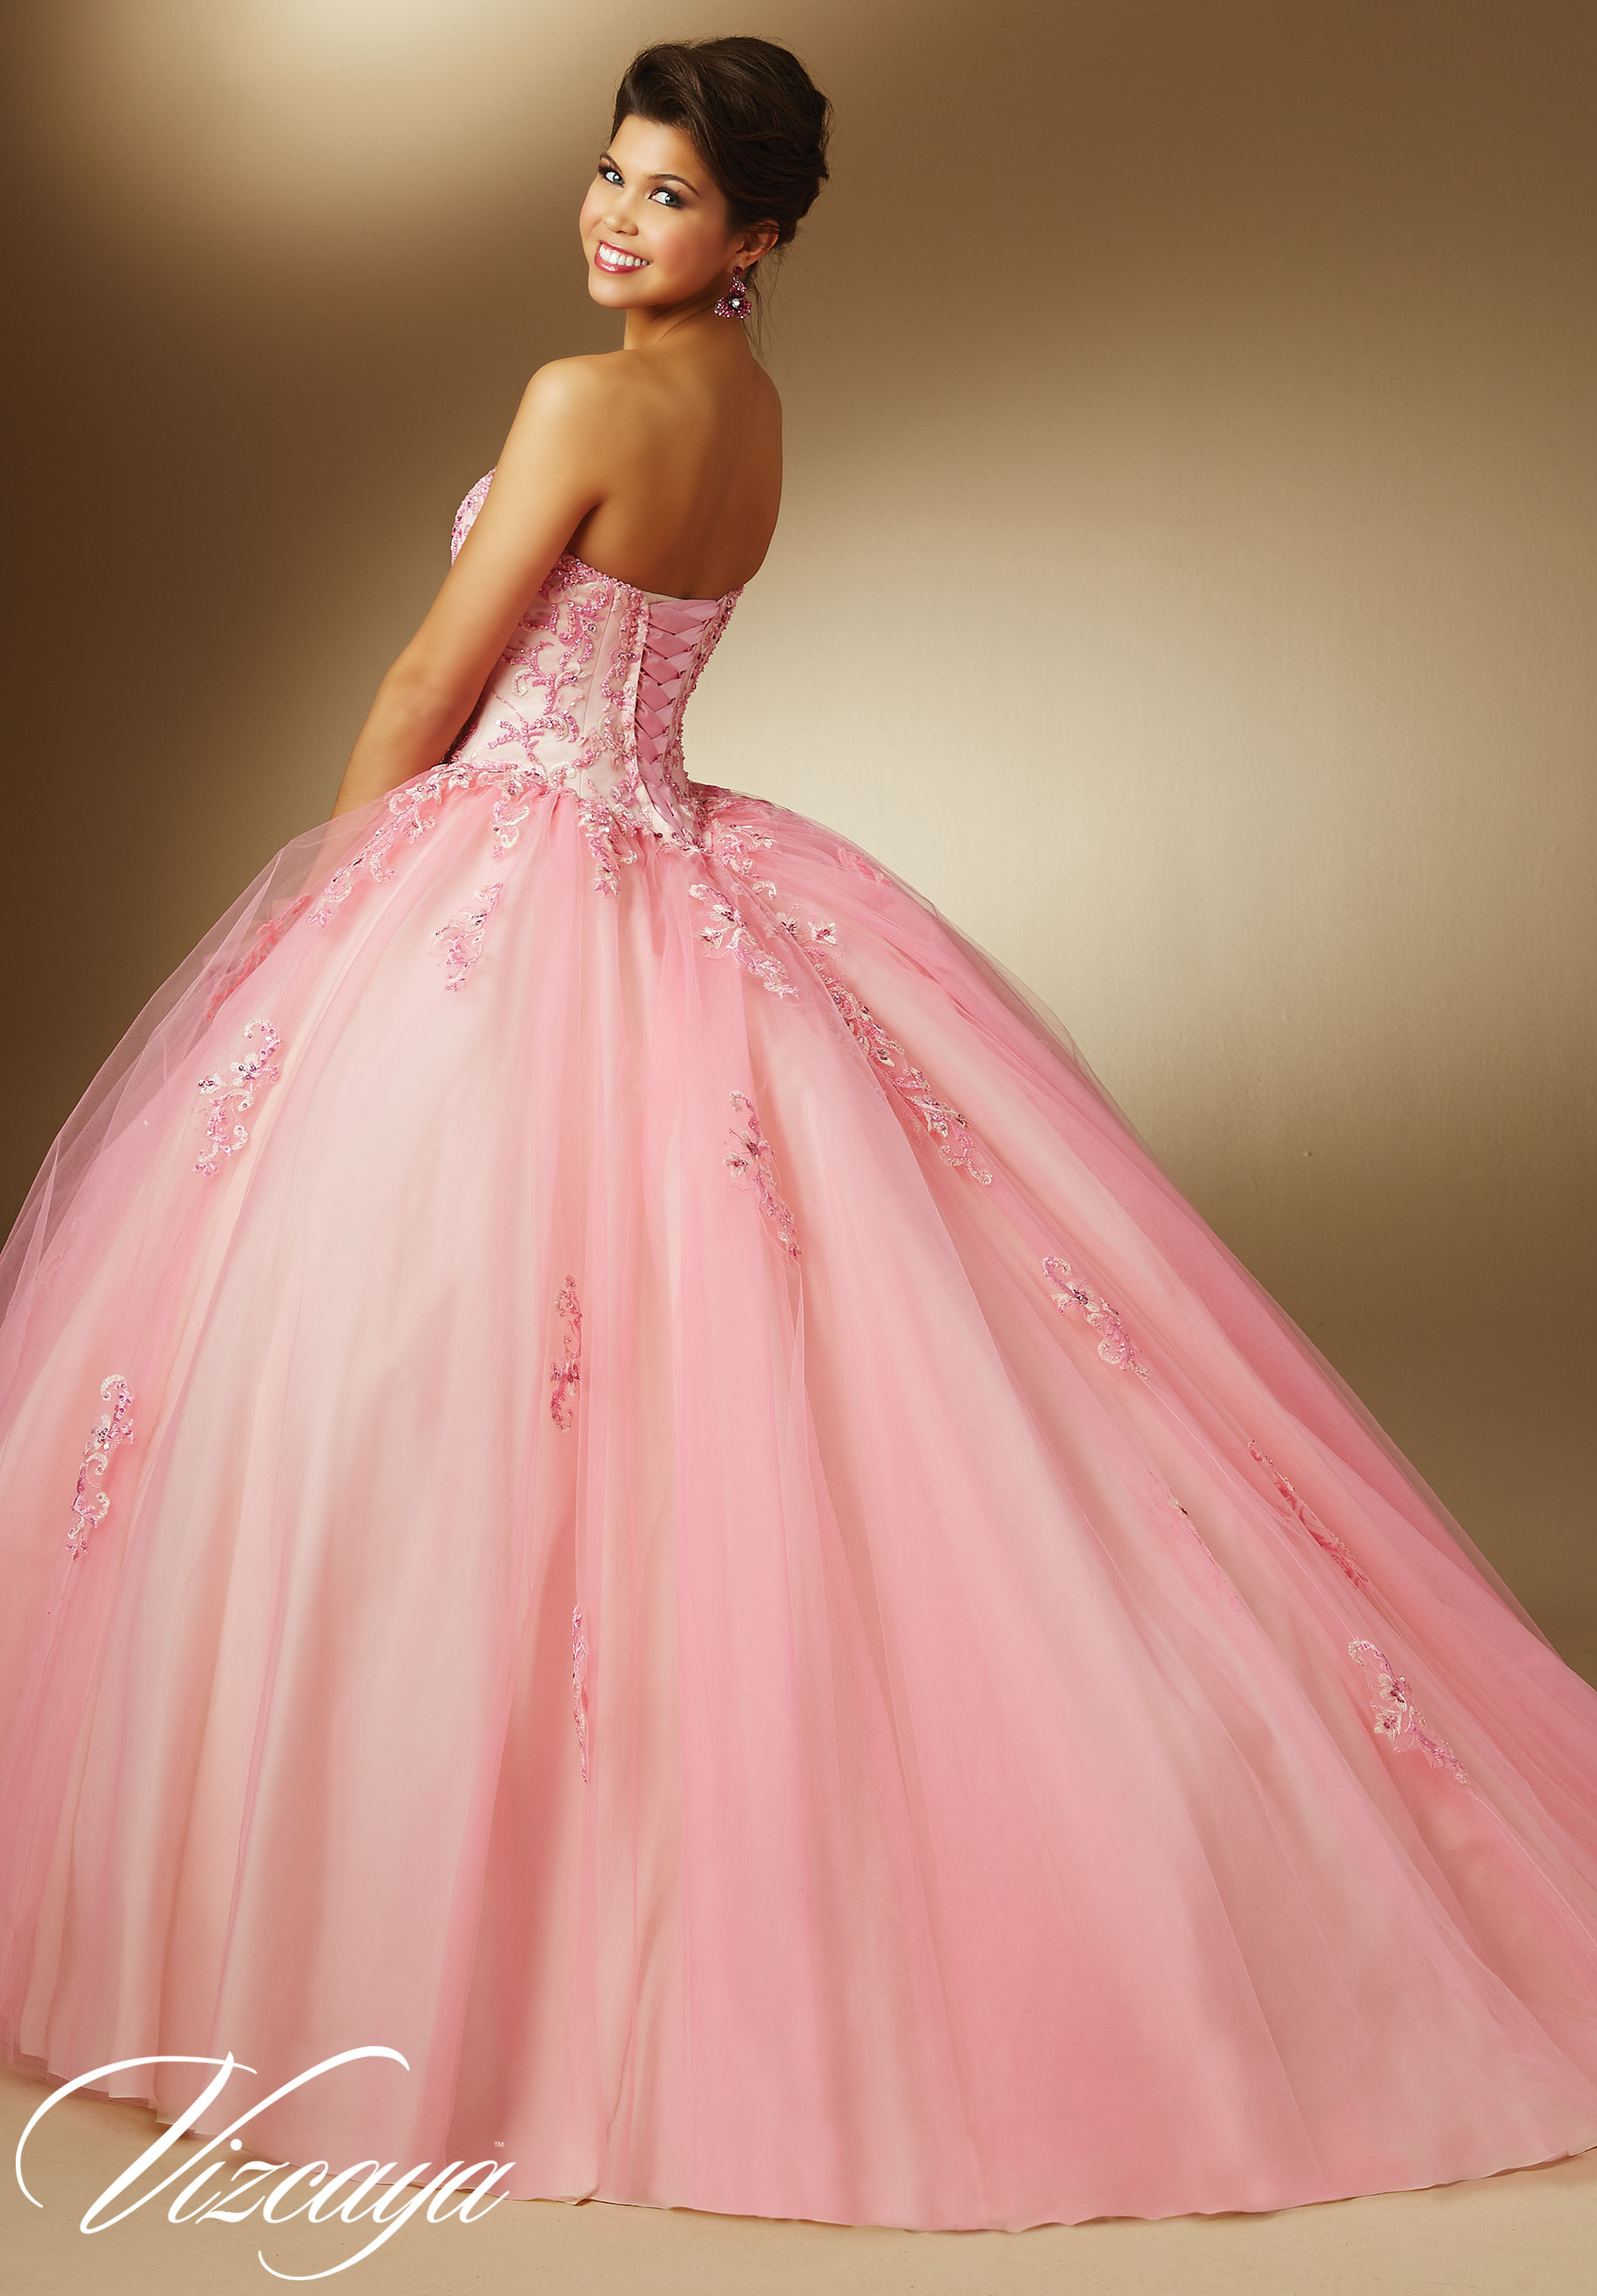 pink evening dresses plus size photo - 1